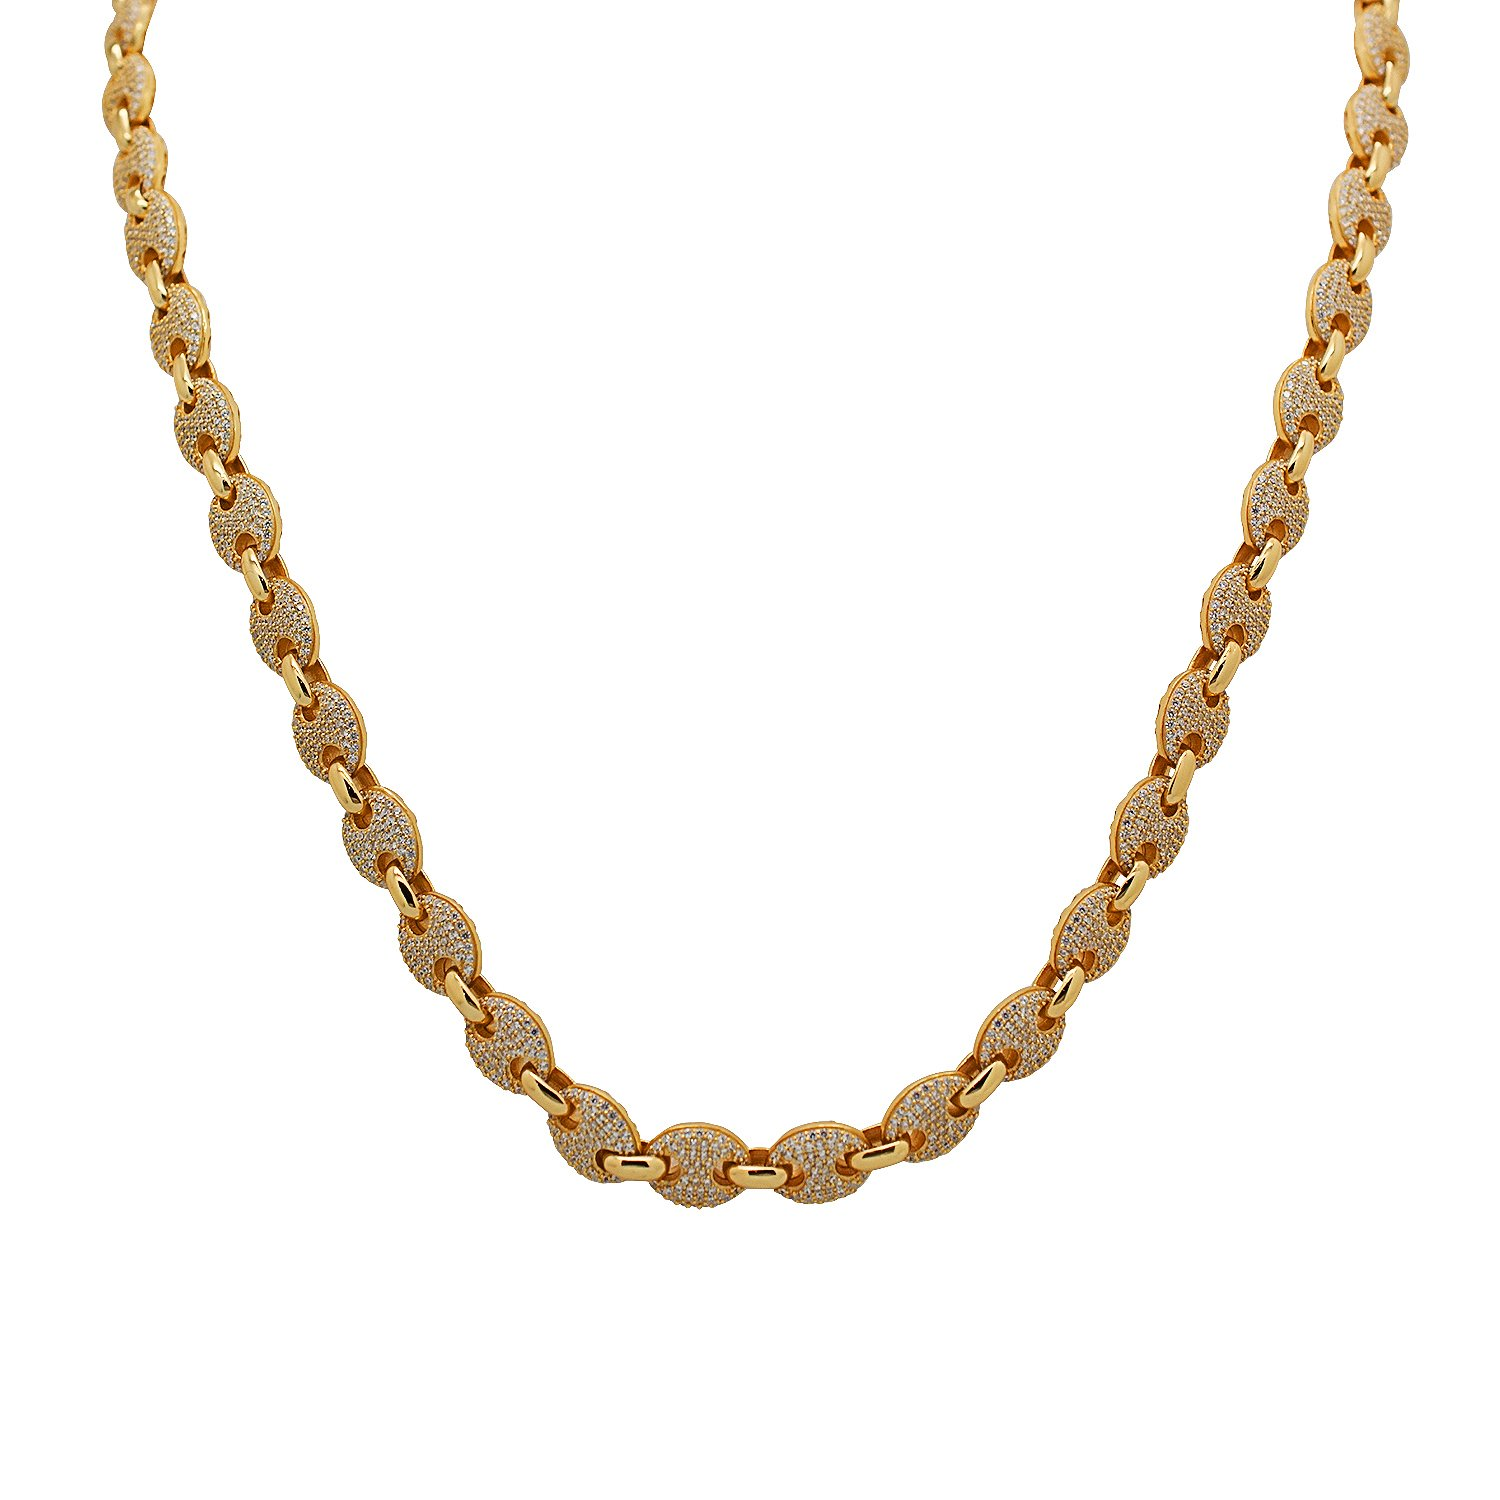 925 Sterling Silver Yellow Gold-Tone Iced Out Hip Hop Bling Cubic Zirconia Gucci-Mariner Bead Link Necklace Chain 30''